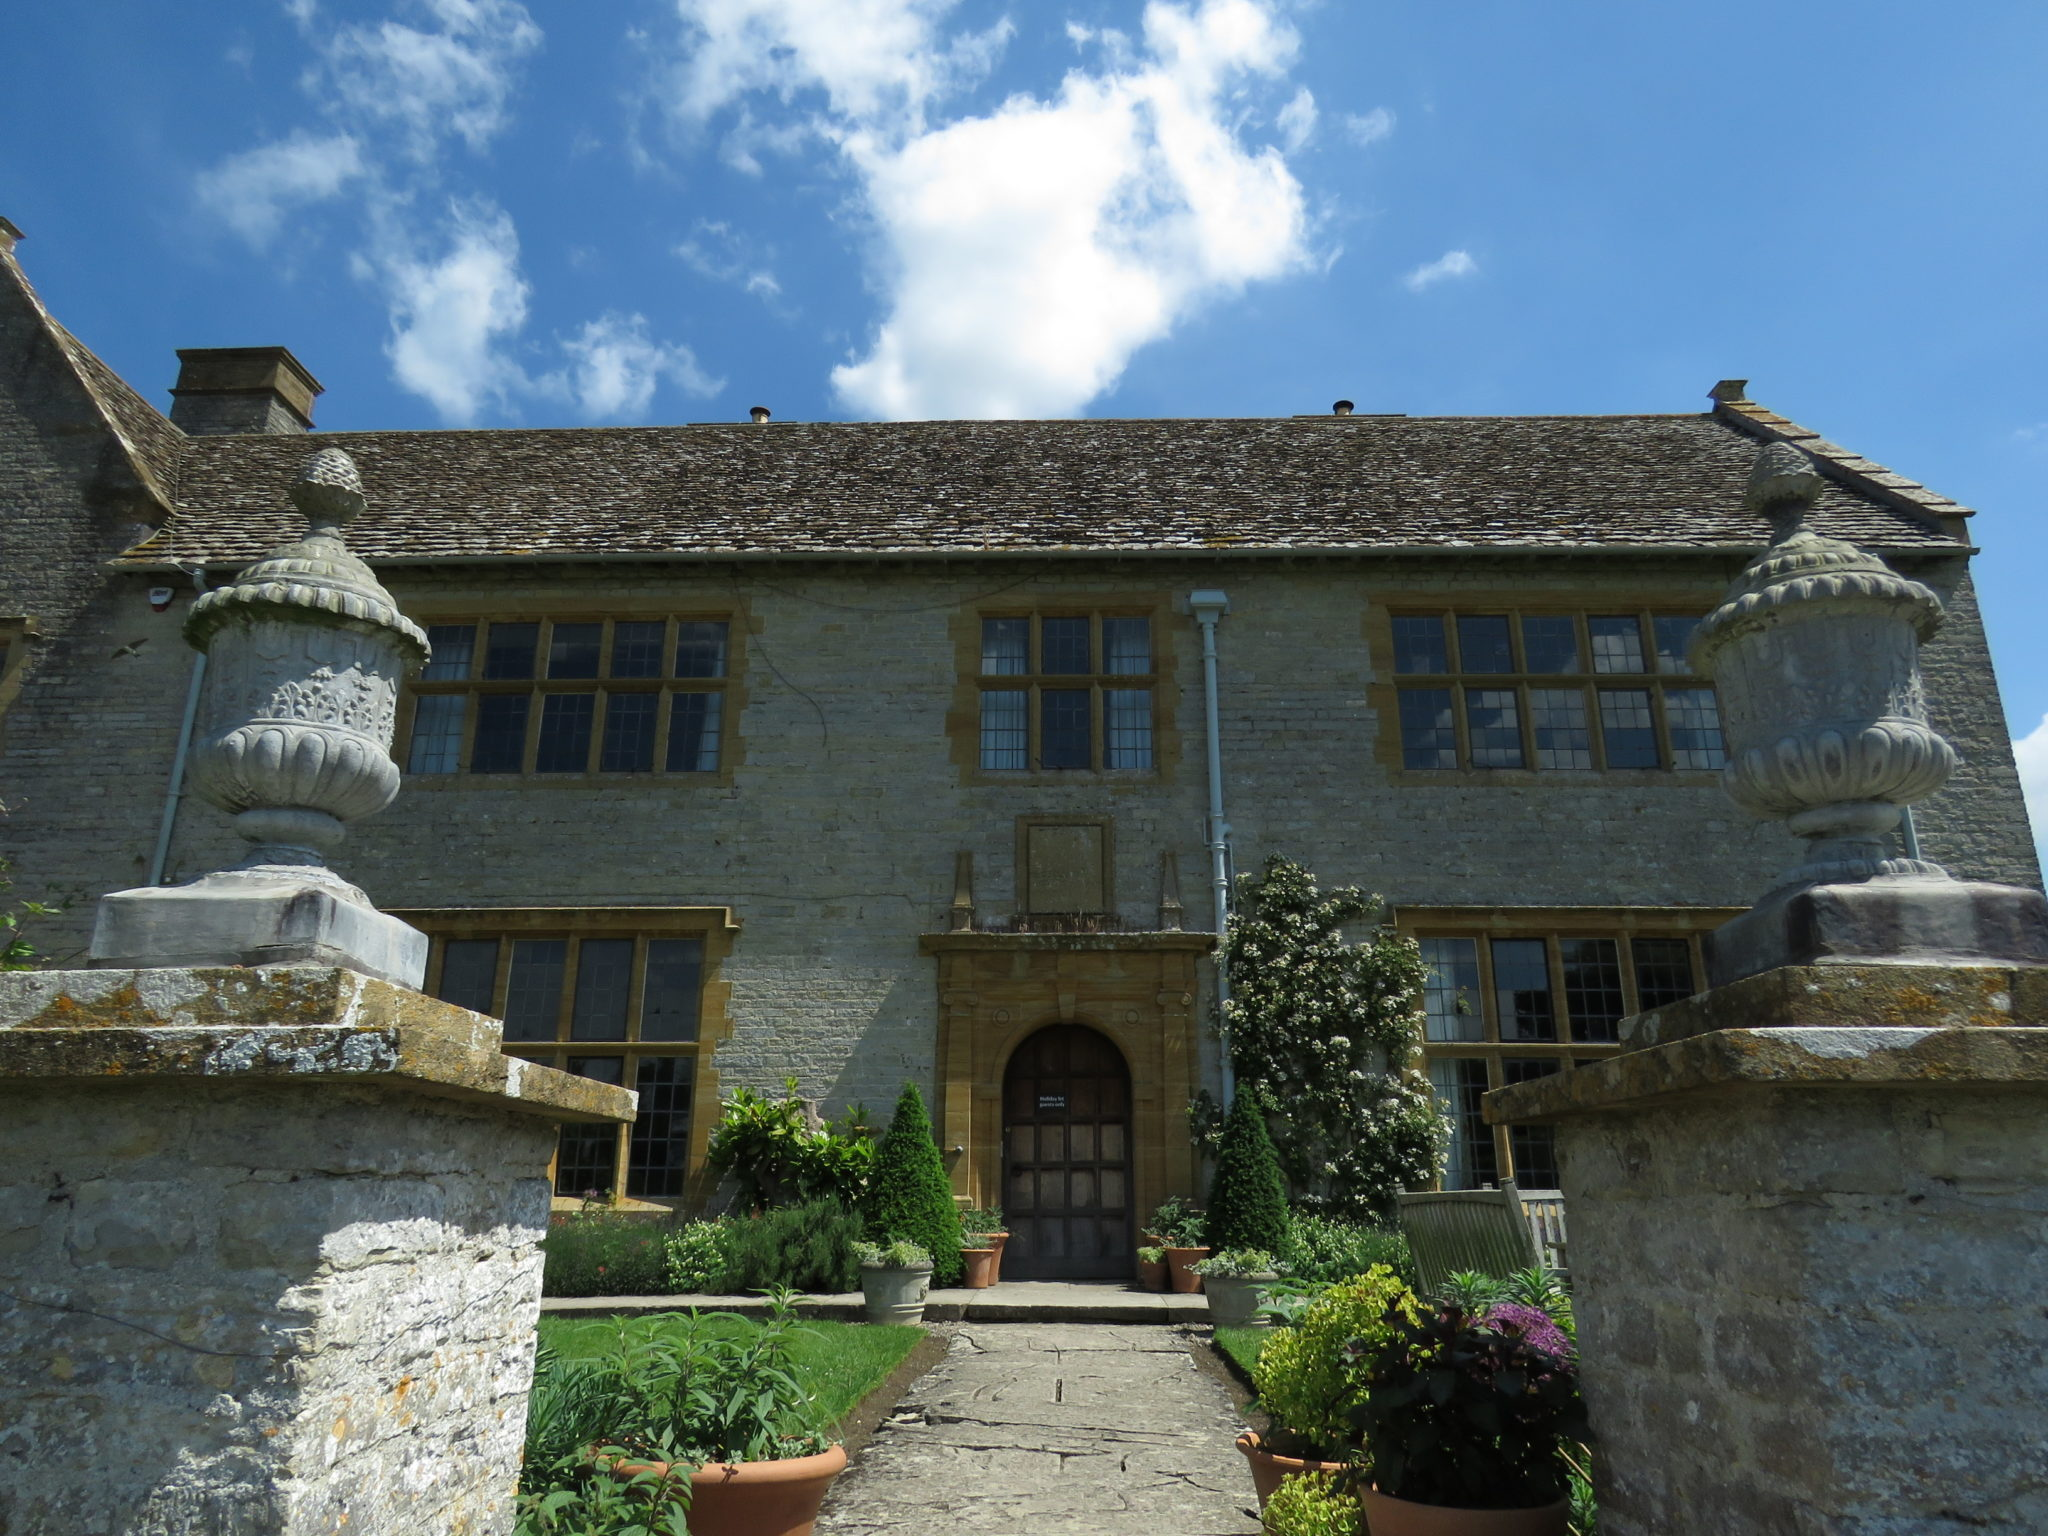 The National Trust's Lytes Cary Manor, Somerset, England